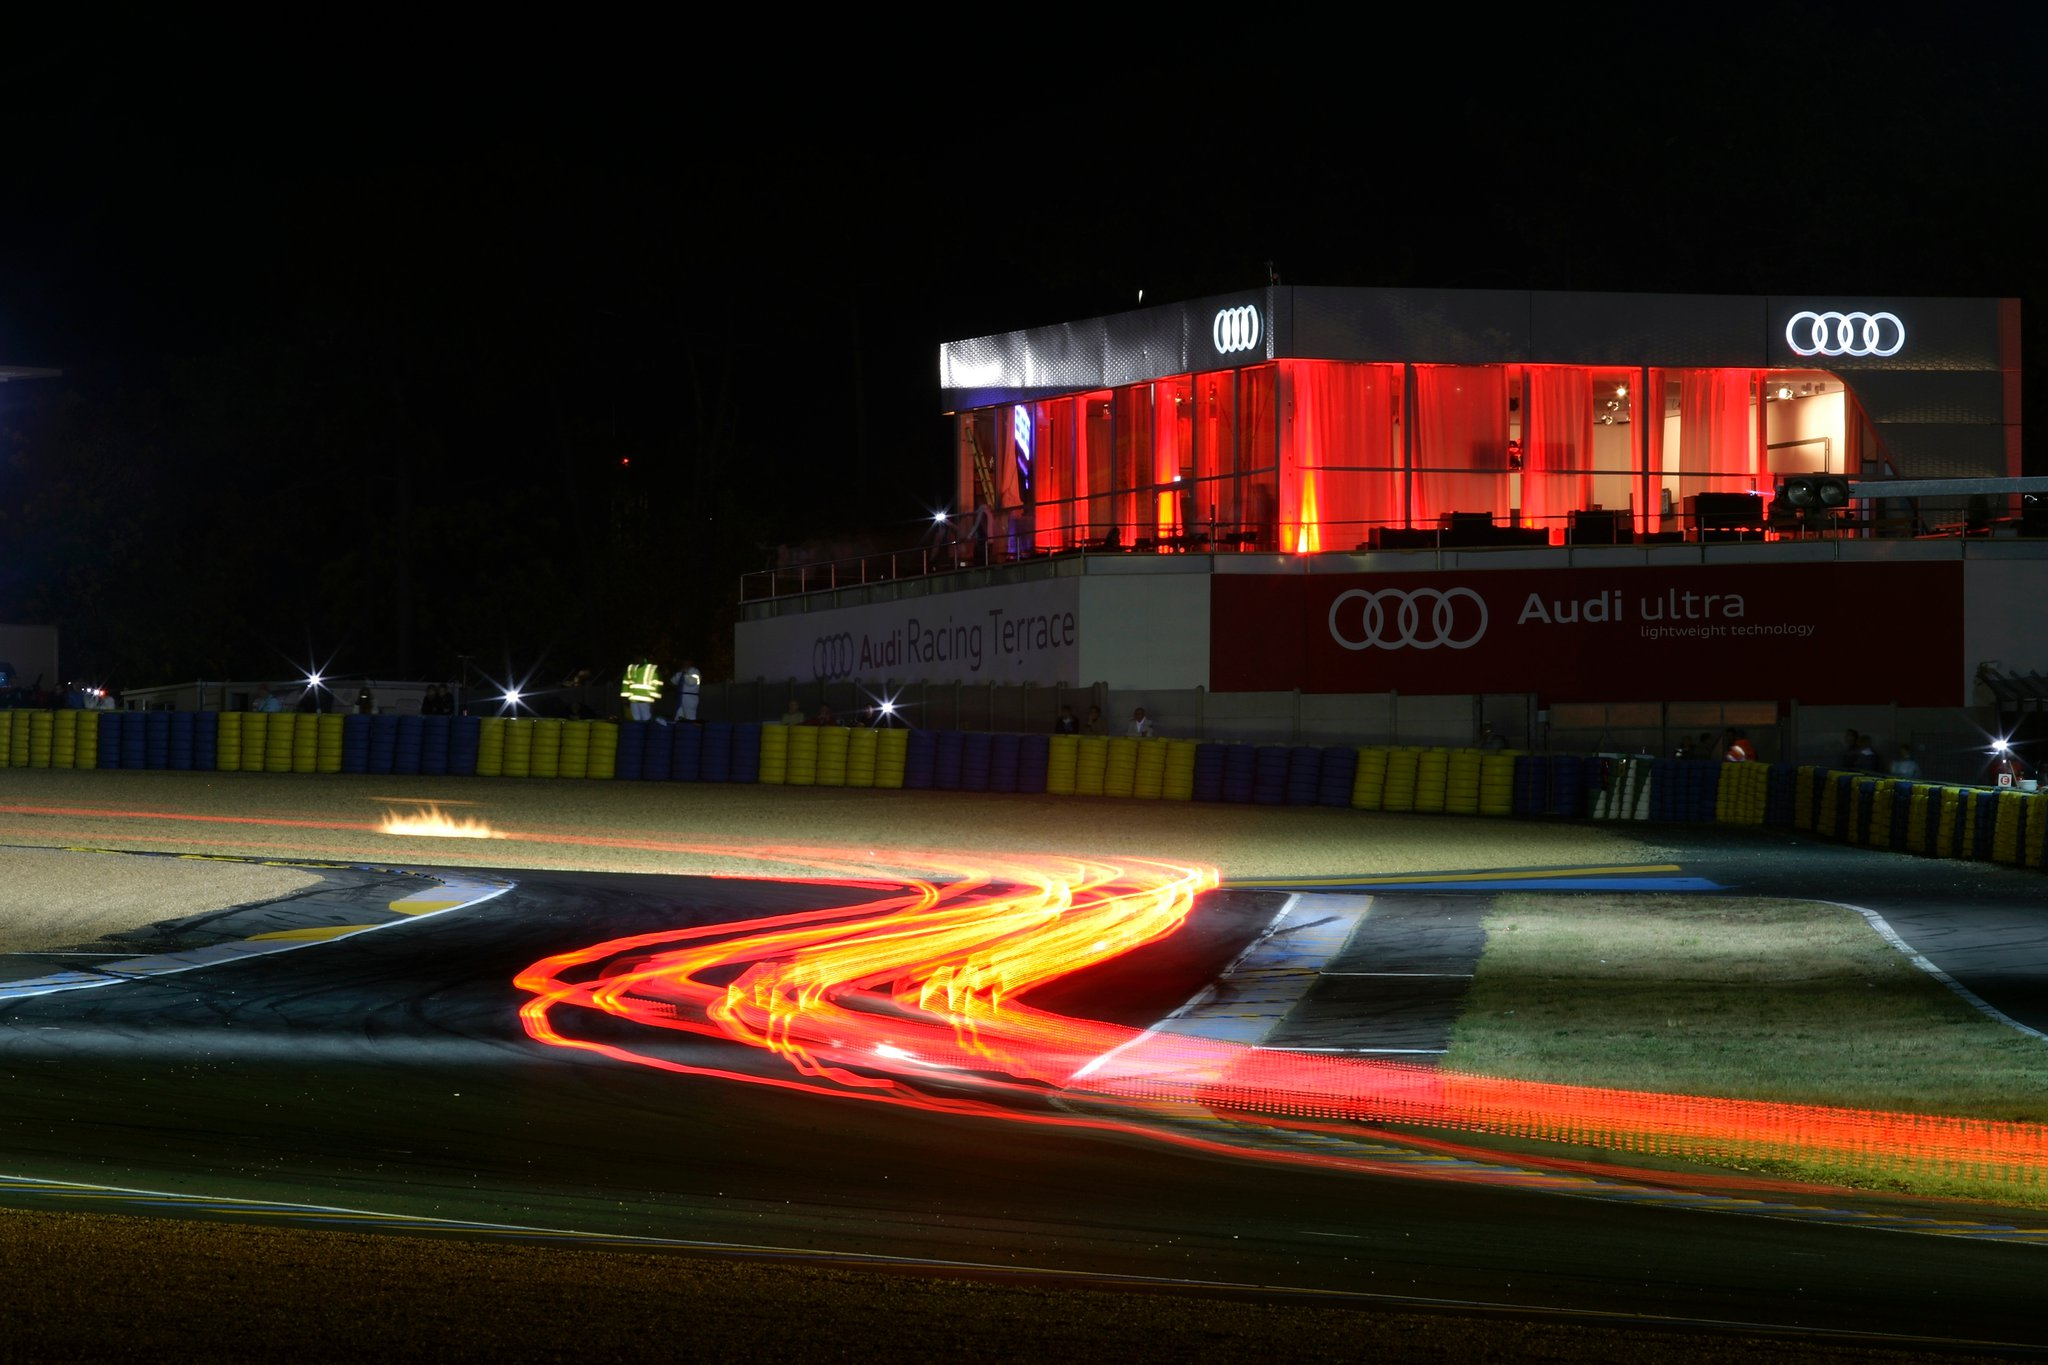 Amazing Audi Car Wallpaper Audi R18 Tdi Iedei